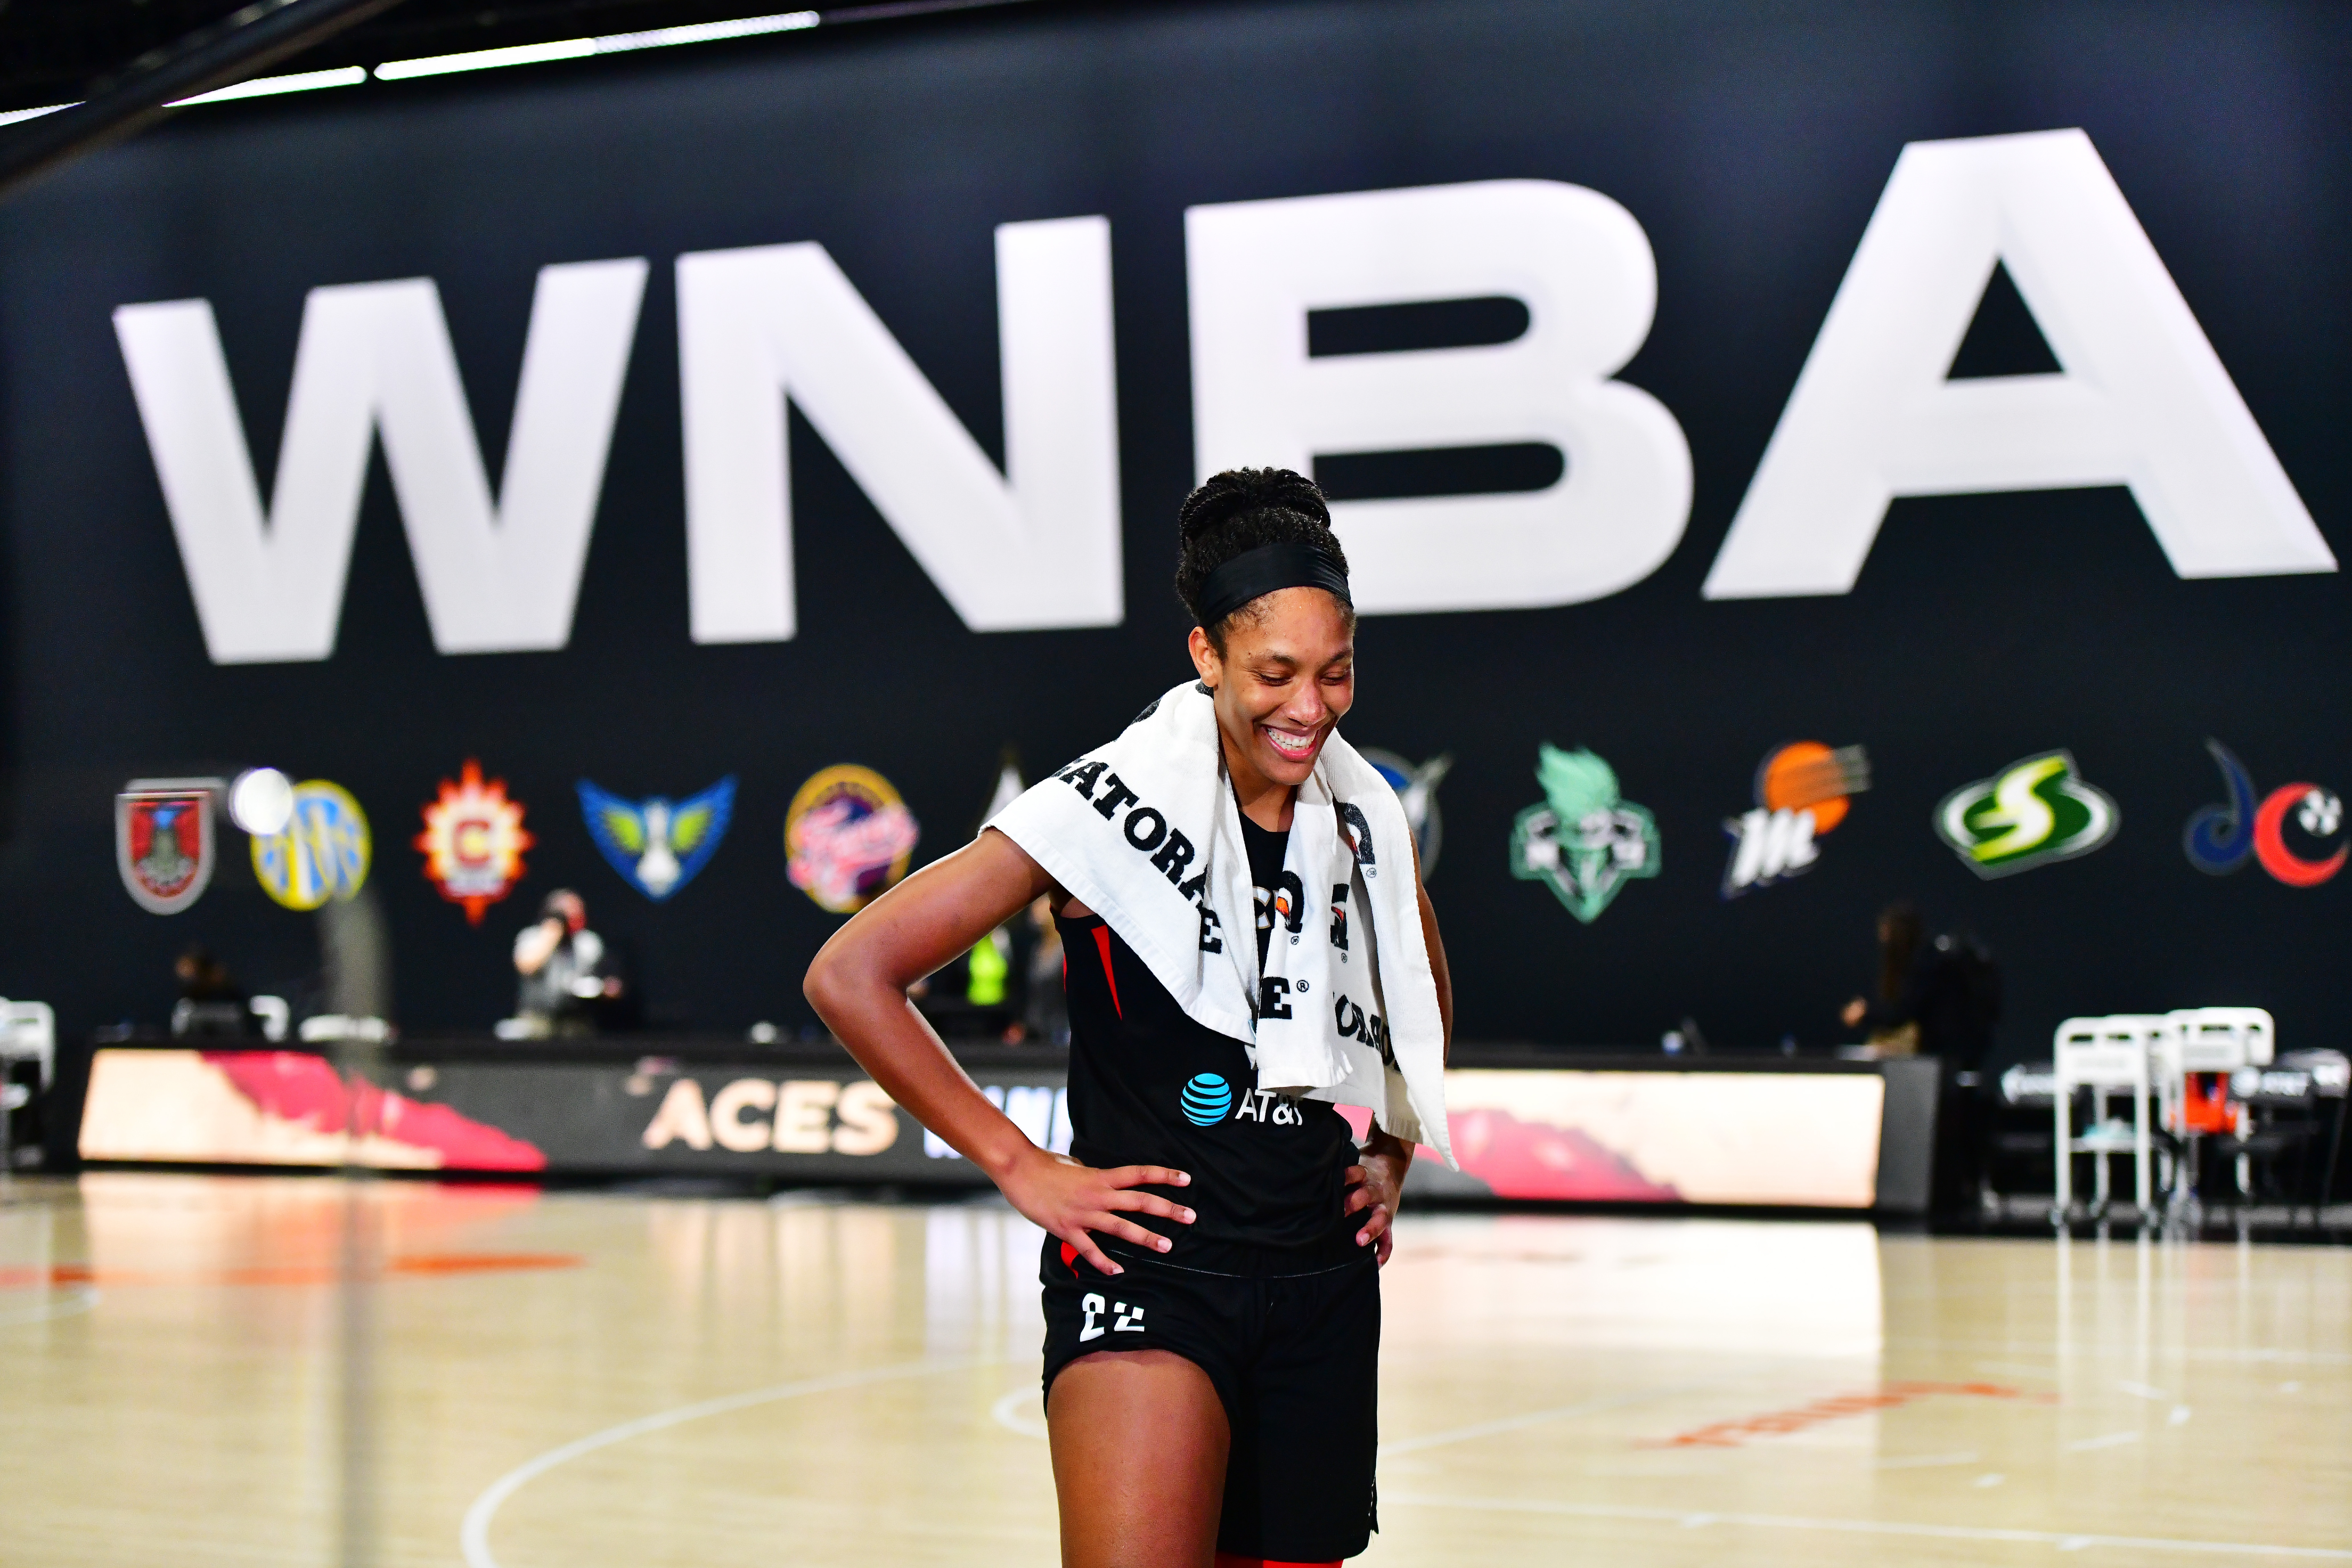 WNBA superstar A'ja Wilson hopes that her most recent accomplishment can serve as inspiration to the generations coming behind her.